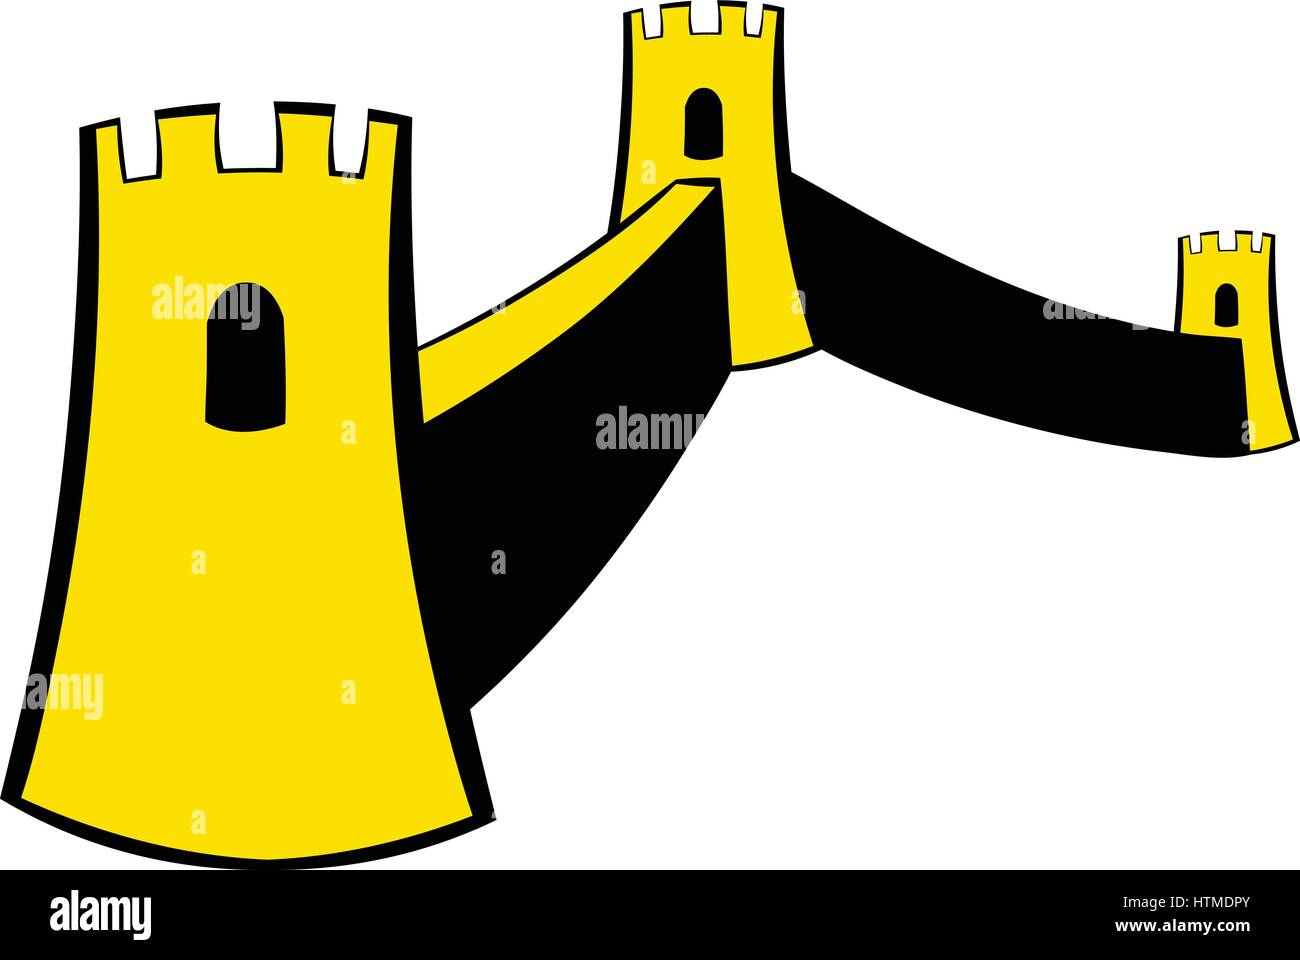 Great Wall of China icon cartoon Stock Vector Art & Illustration ...